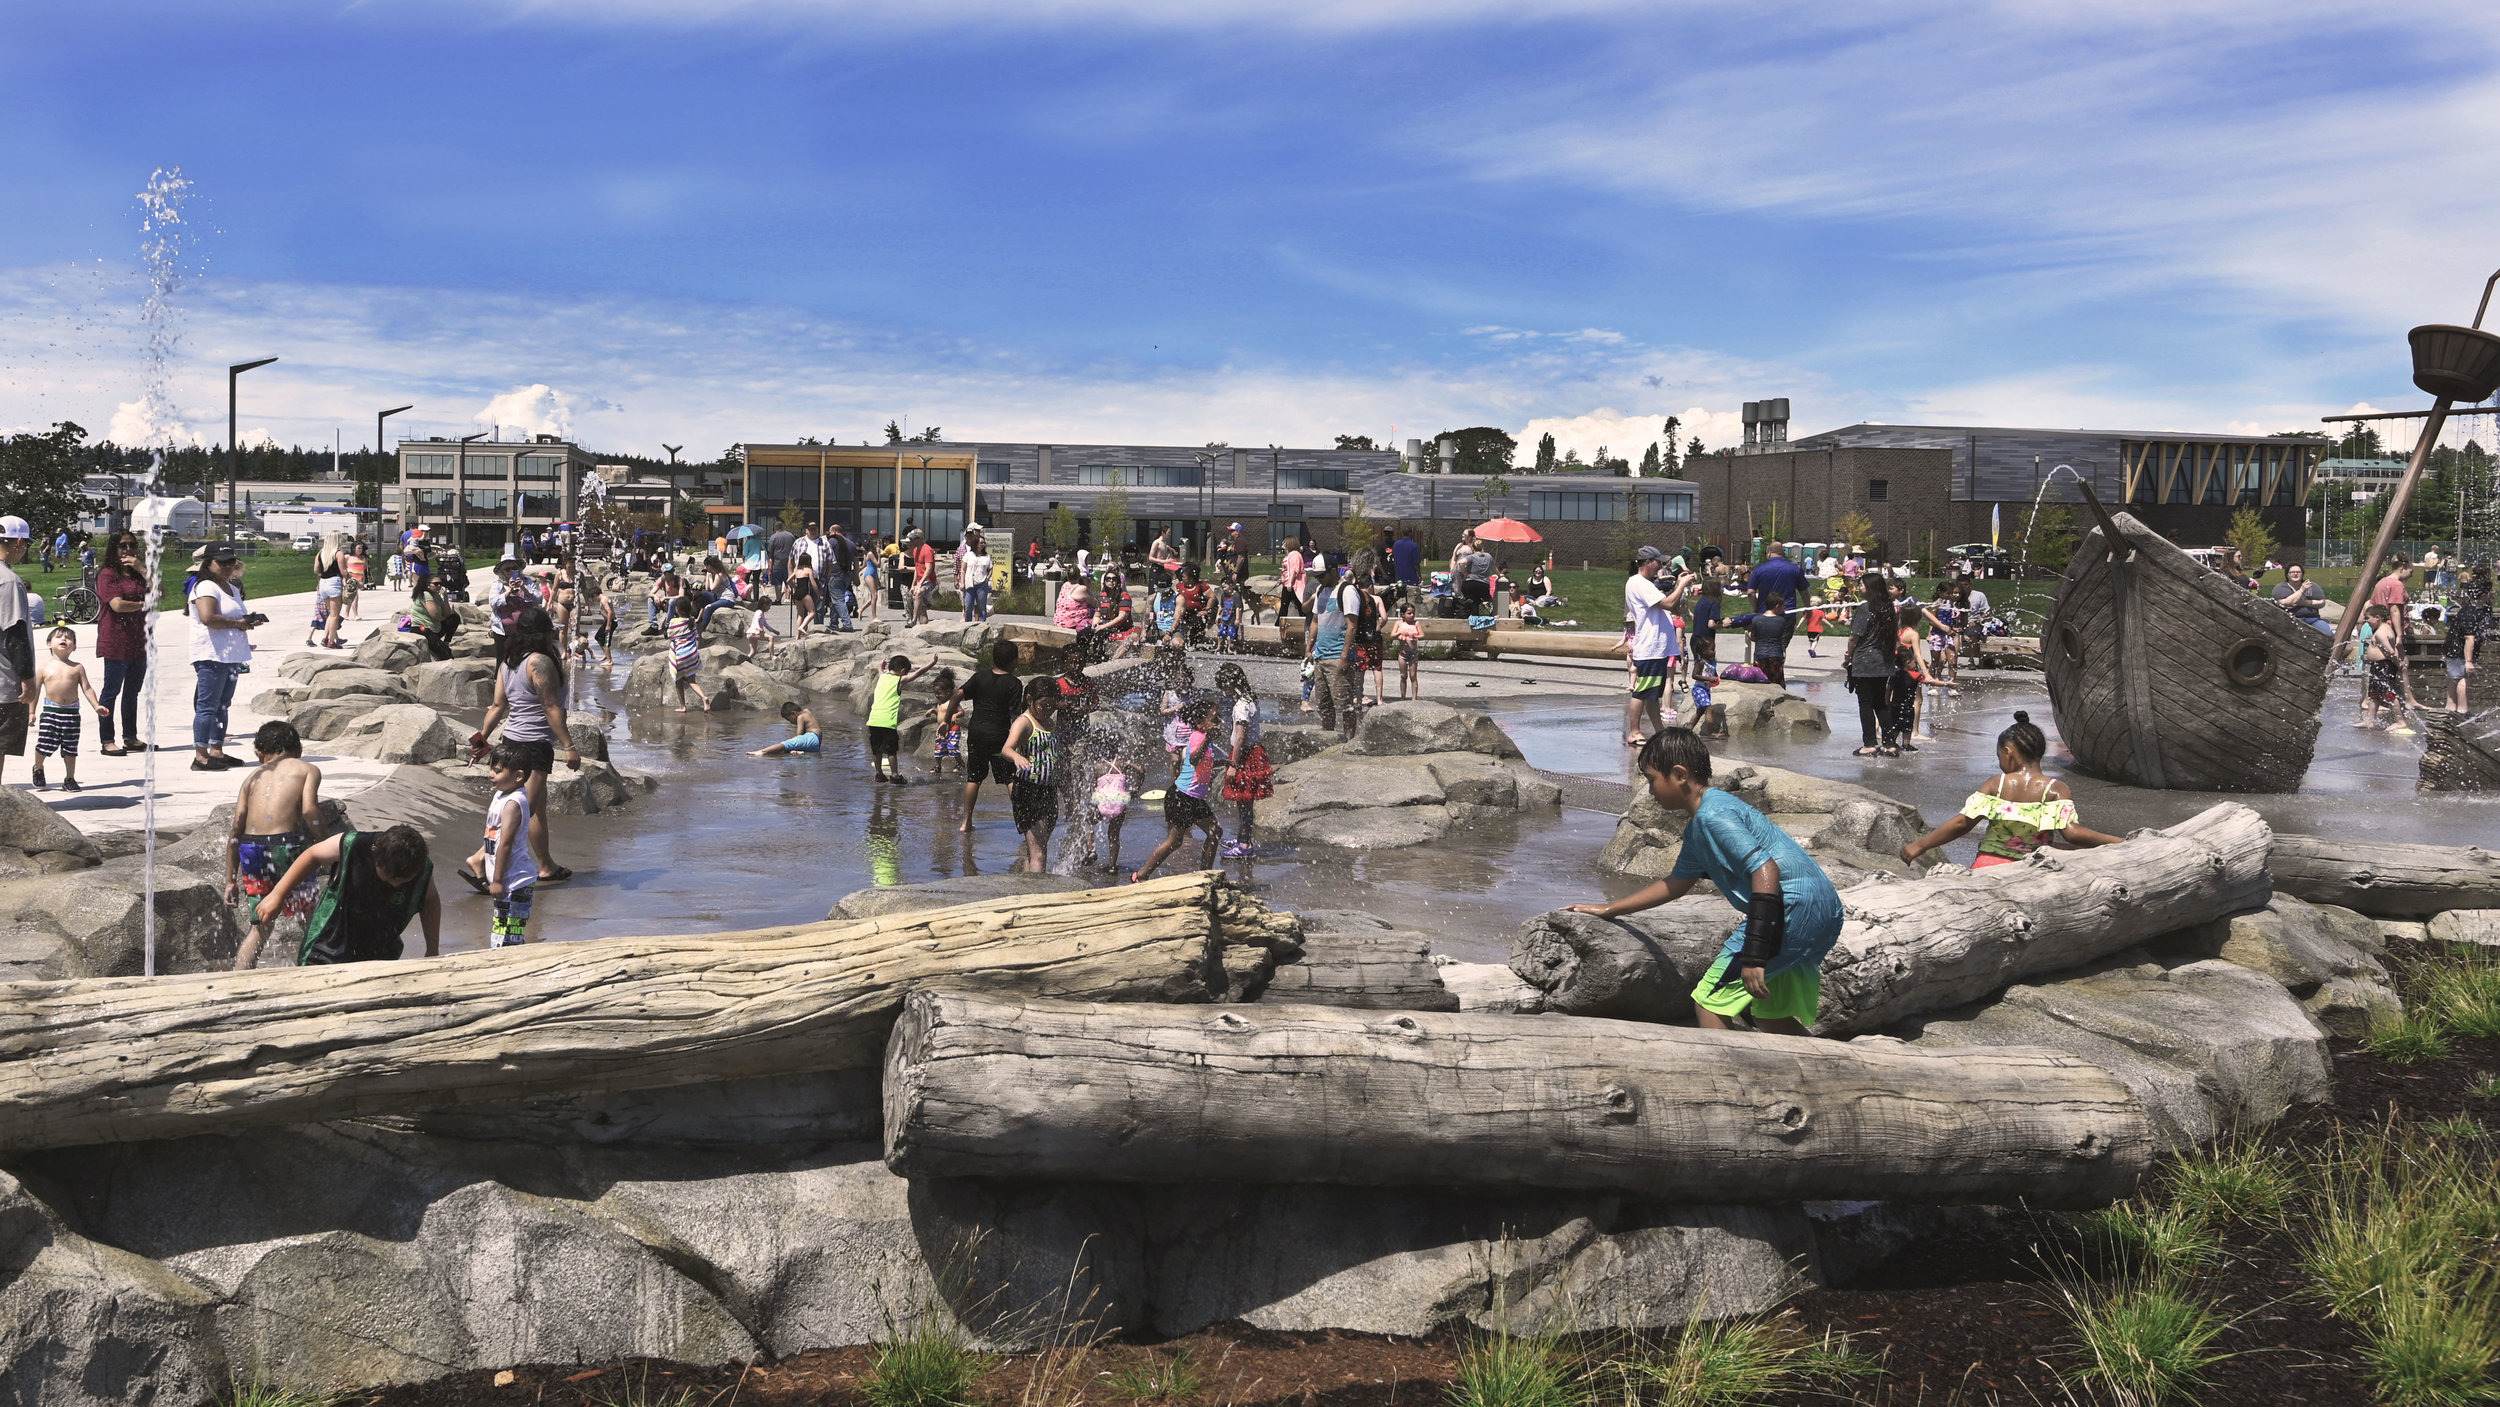 children play in shipwreck shores during its grand opening day, logs and a shipwreck spout water